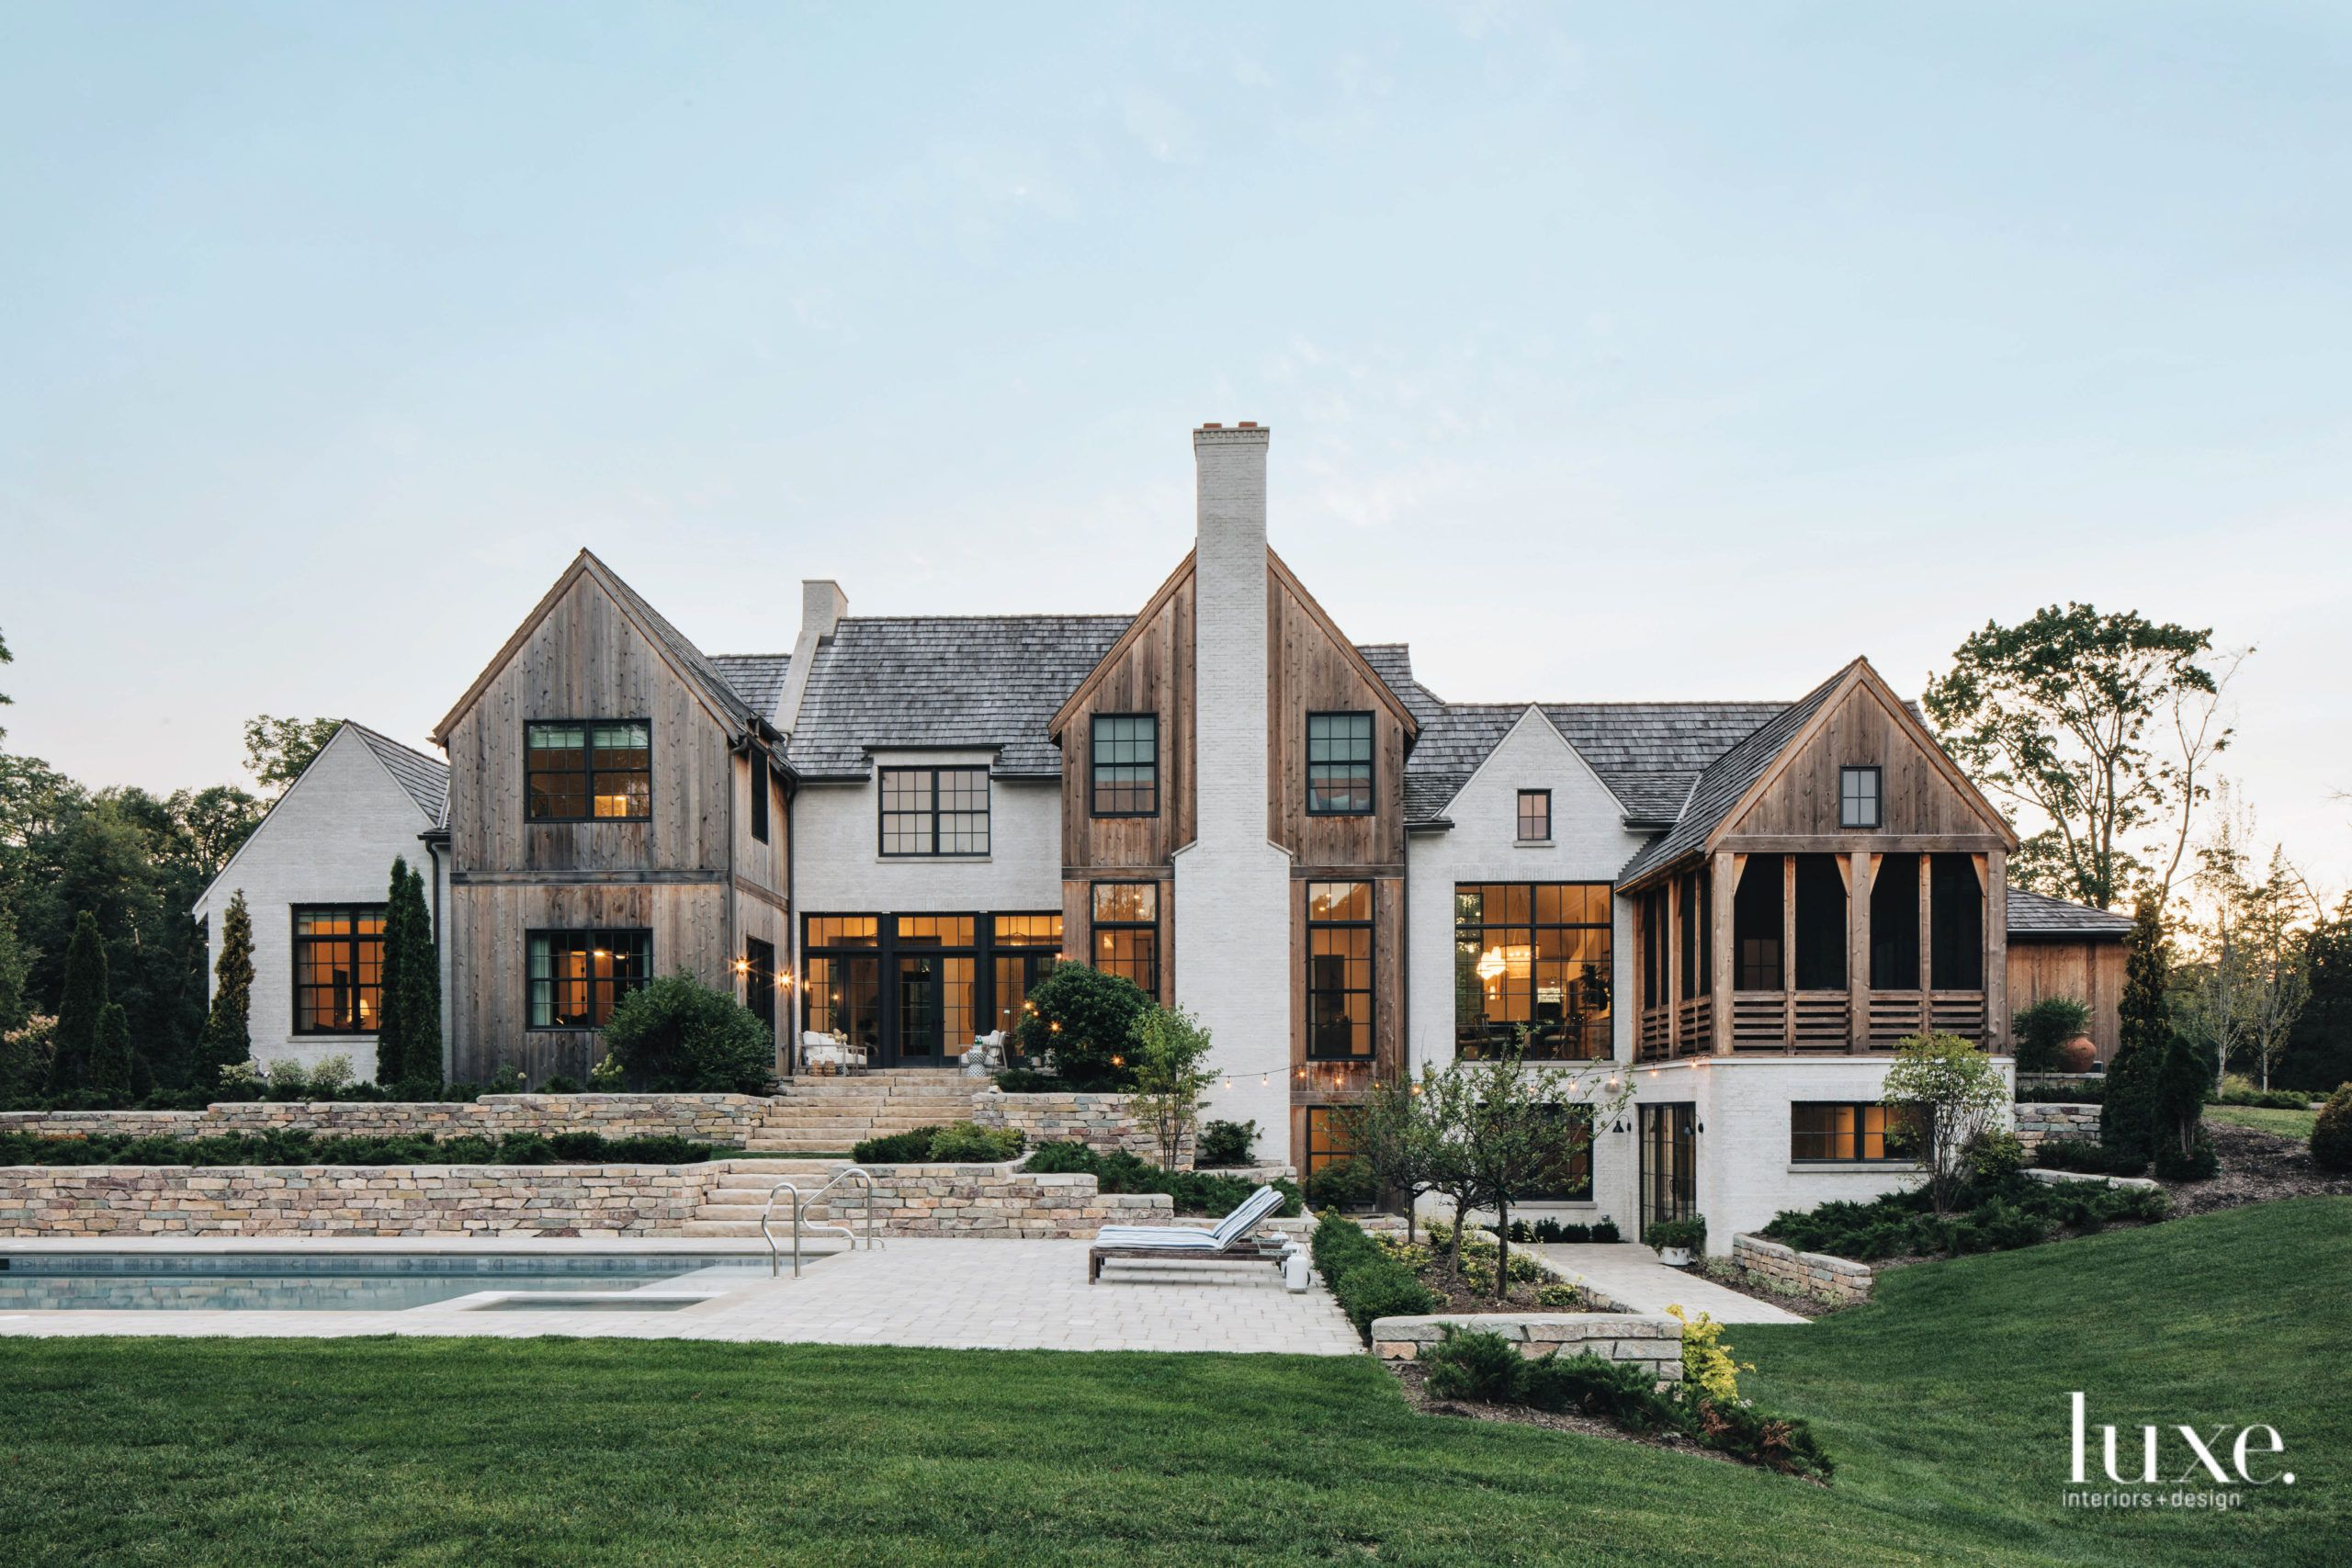 Take A Virtual Vacation To The Belgian Countryside By Touring This Chicago Home